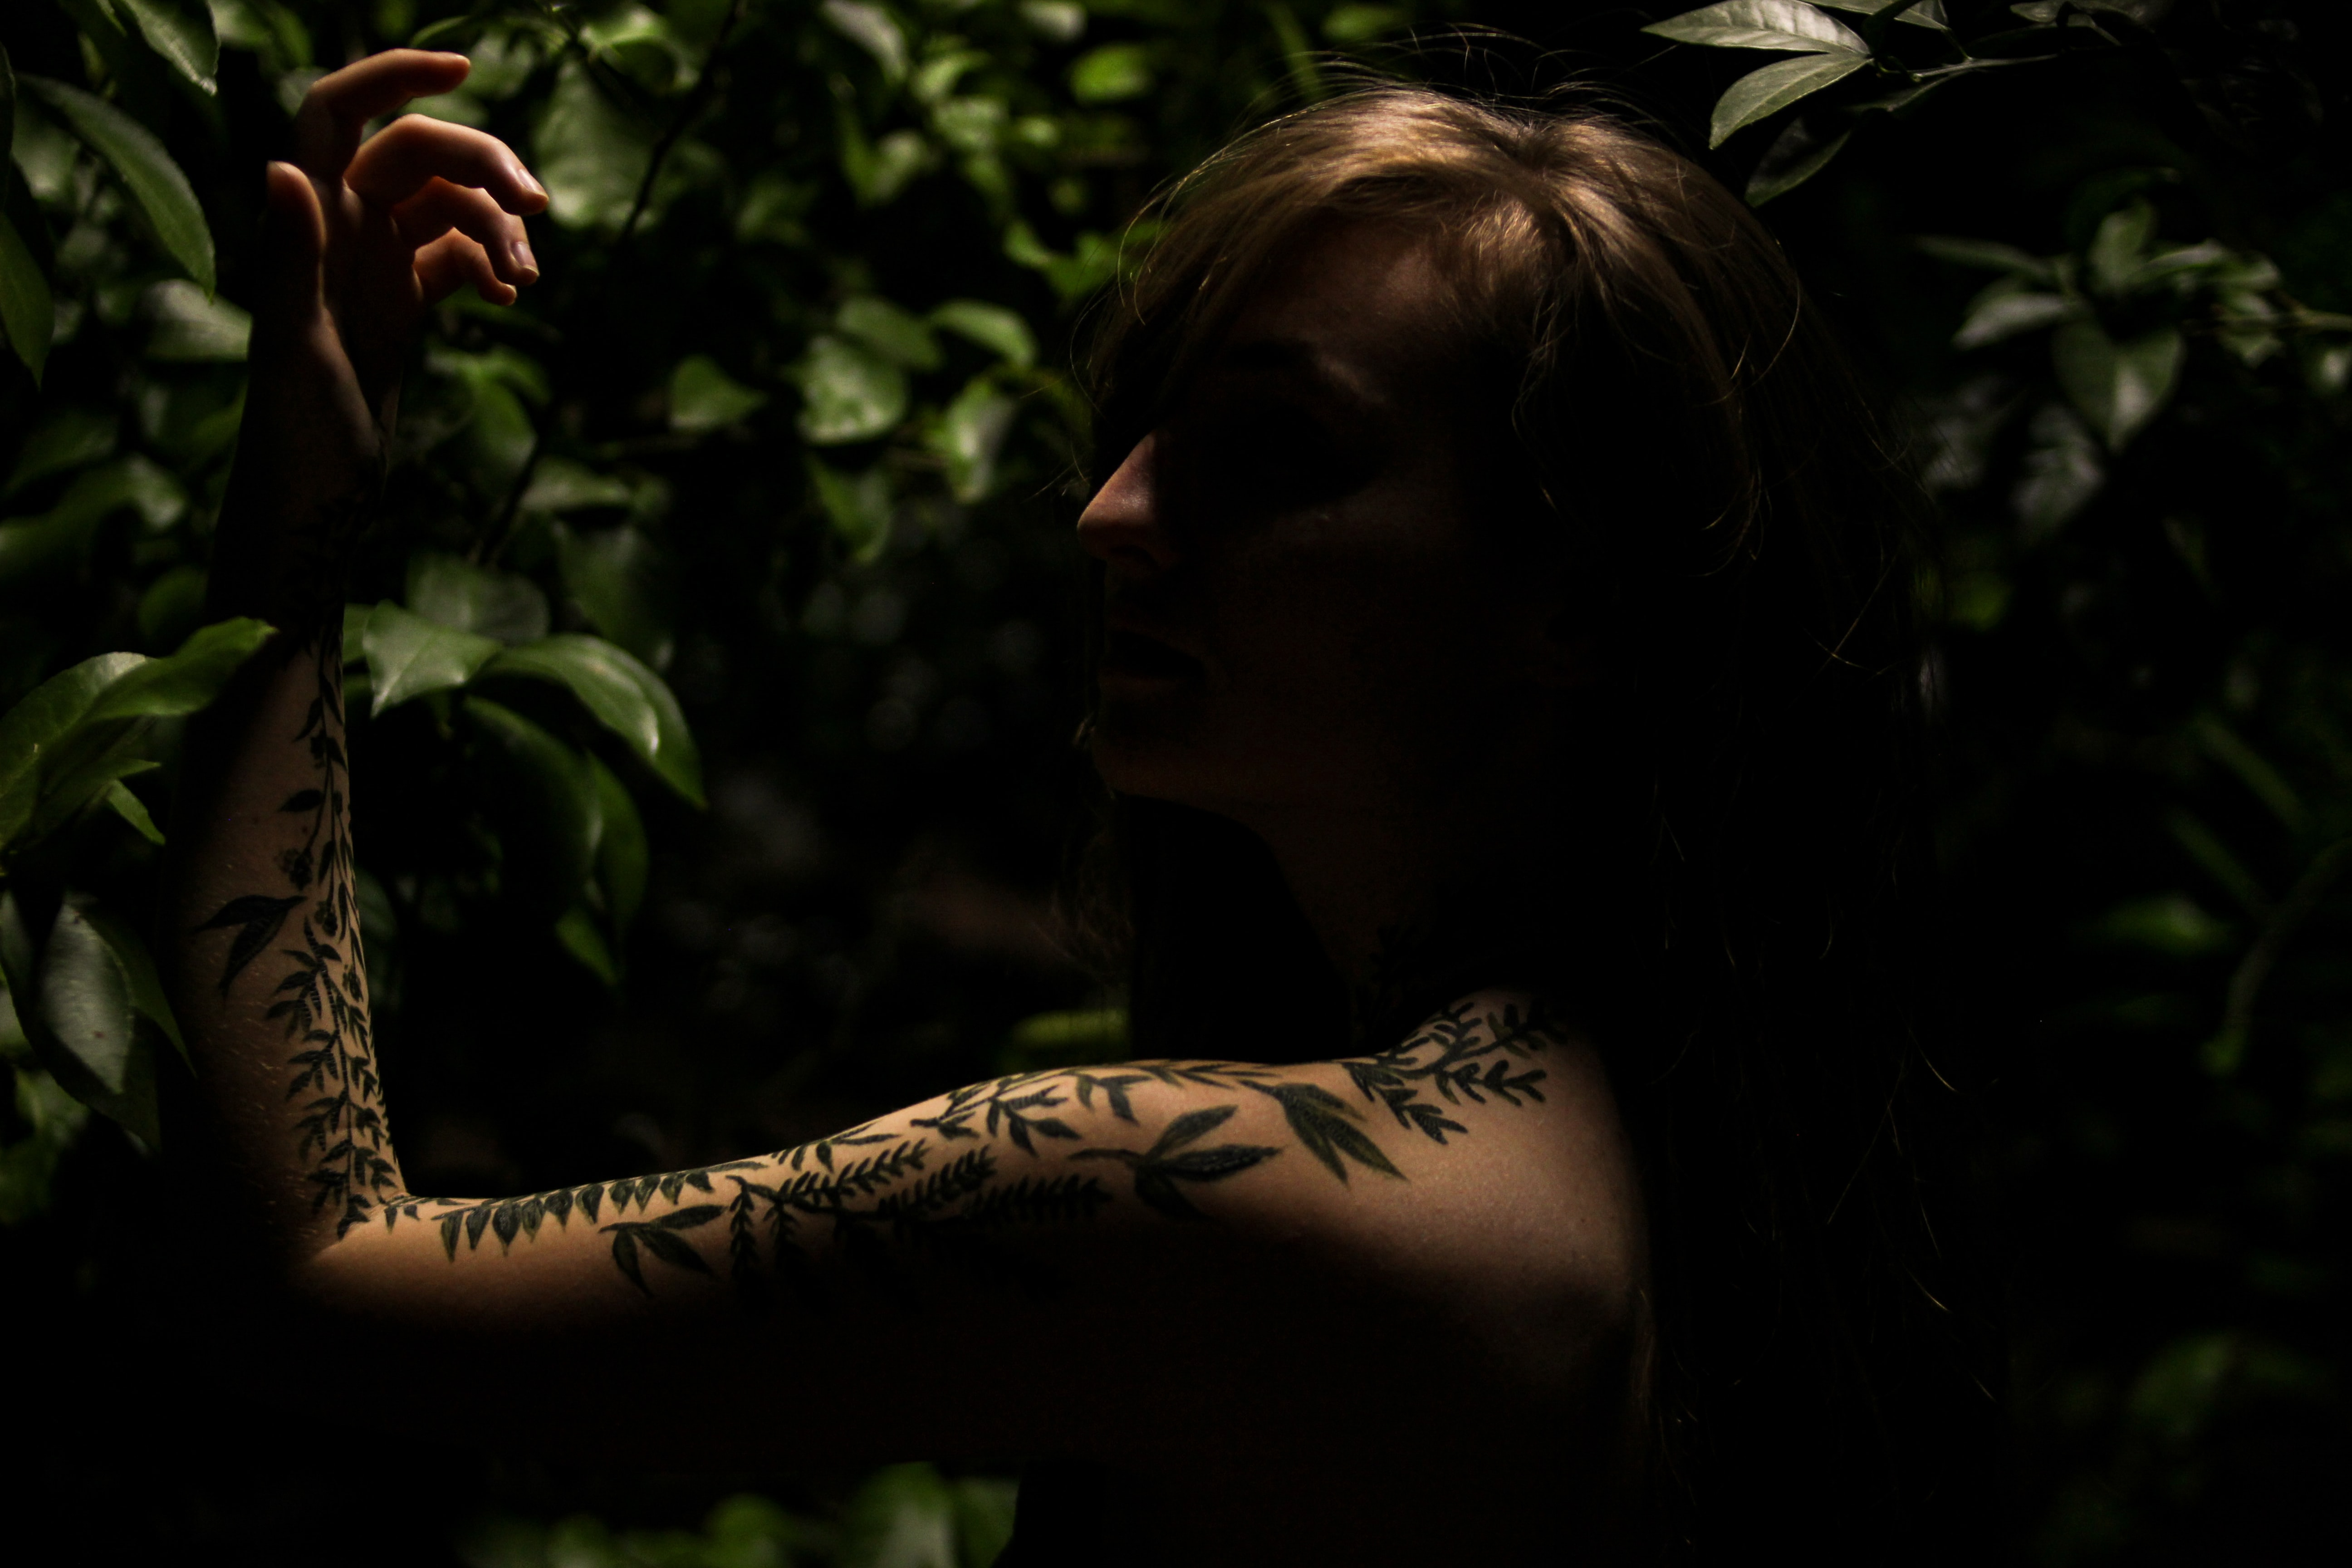 A person stands in shadows at the Birmingham Botanical Gardens, showing a leaf-print tattoo sleeve